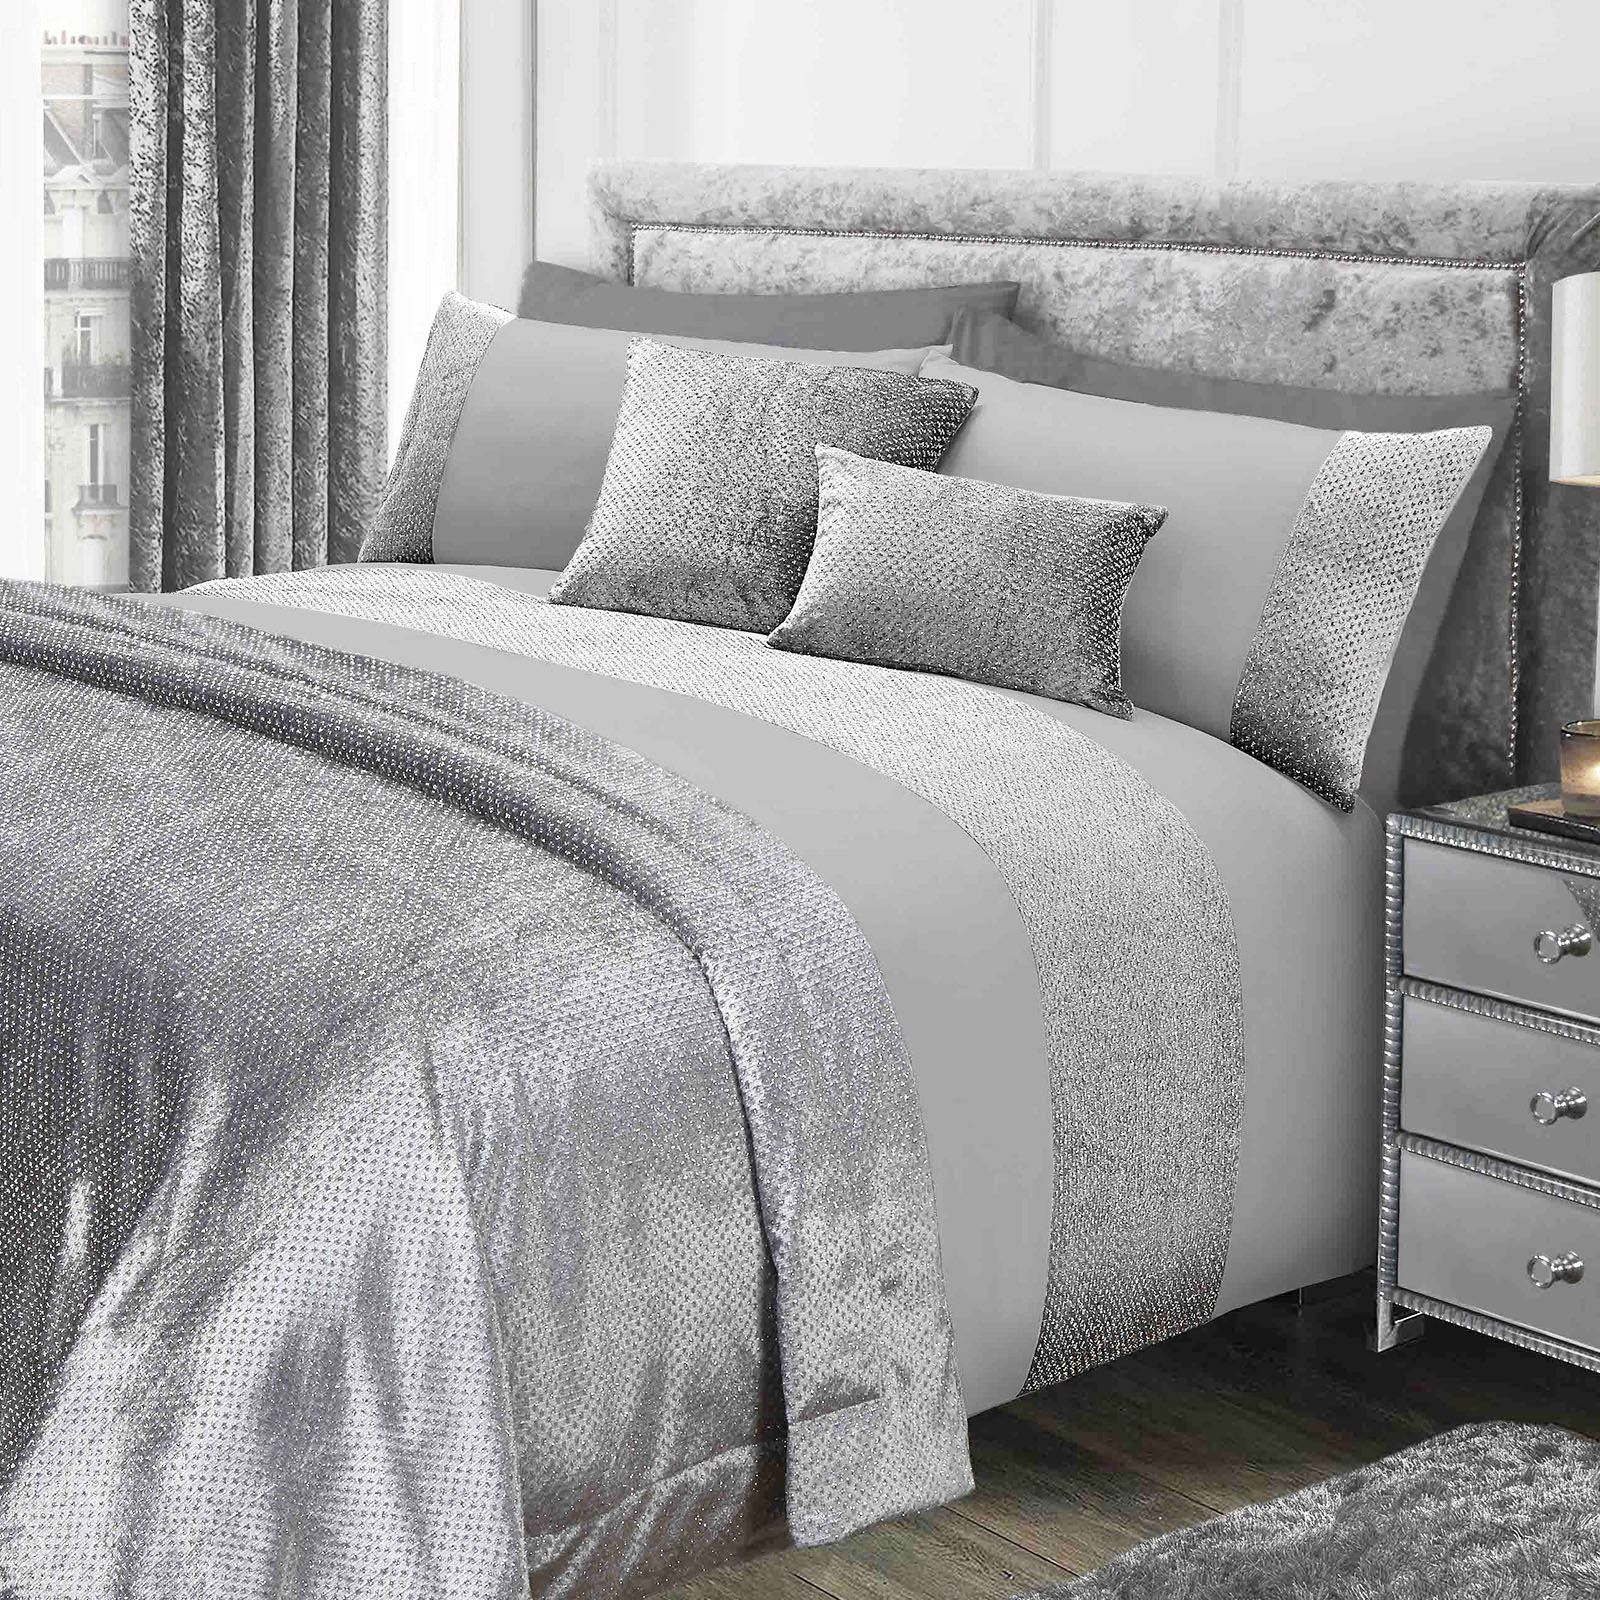 Sienna-Glitter-Duvet-Cover-with-Pillow-Case-Sparkle-Velvet-Bedding-Set-Grey-Pink thumbnail 13